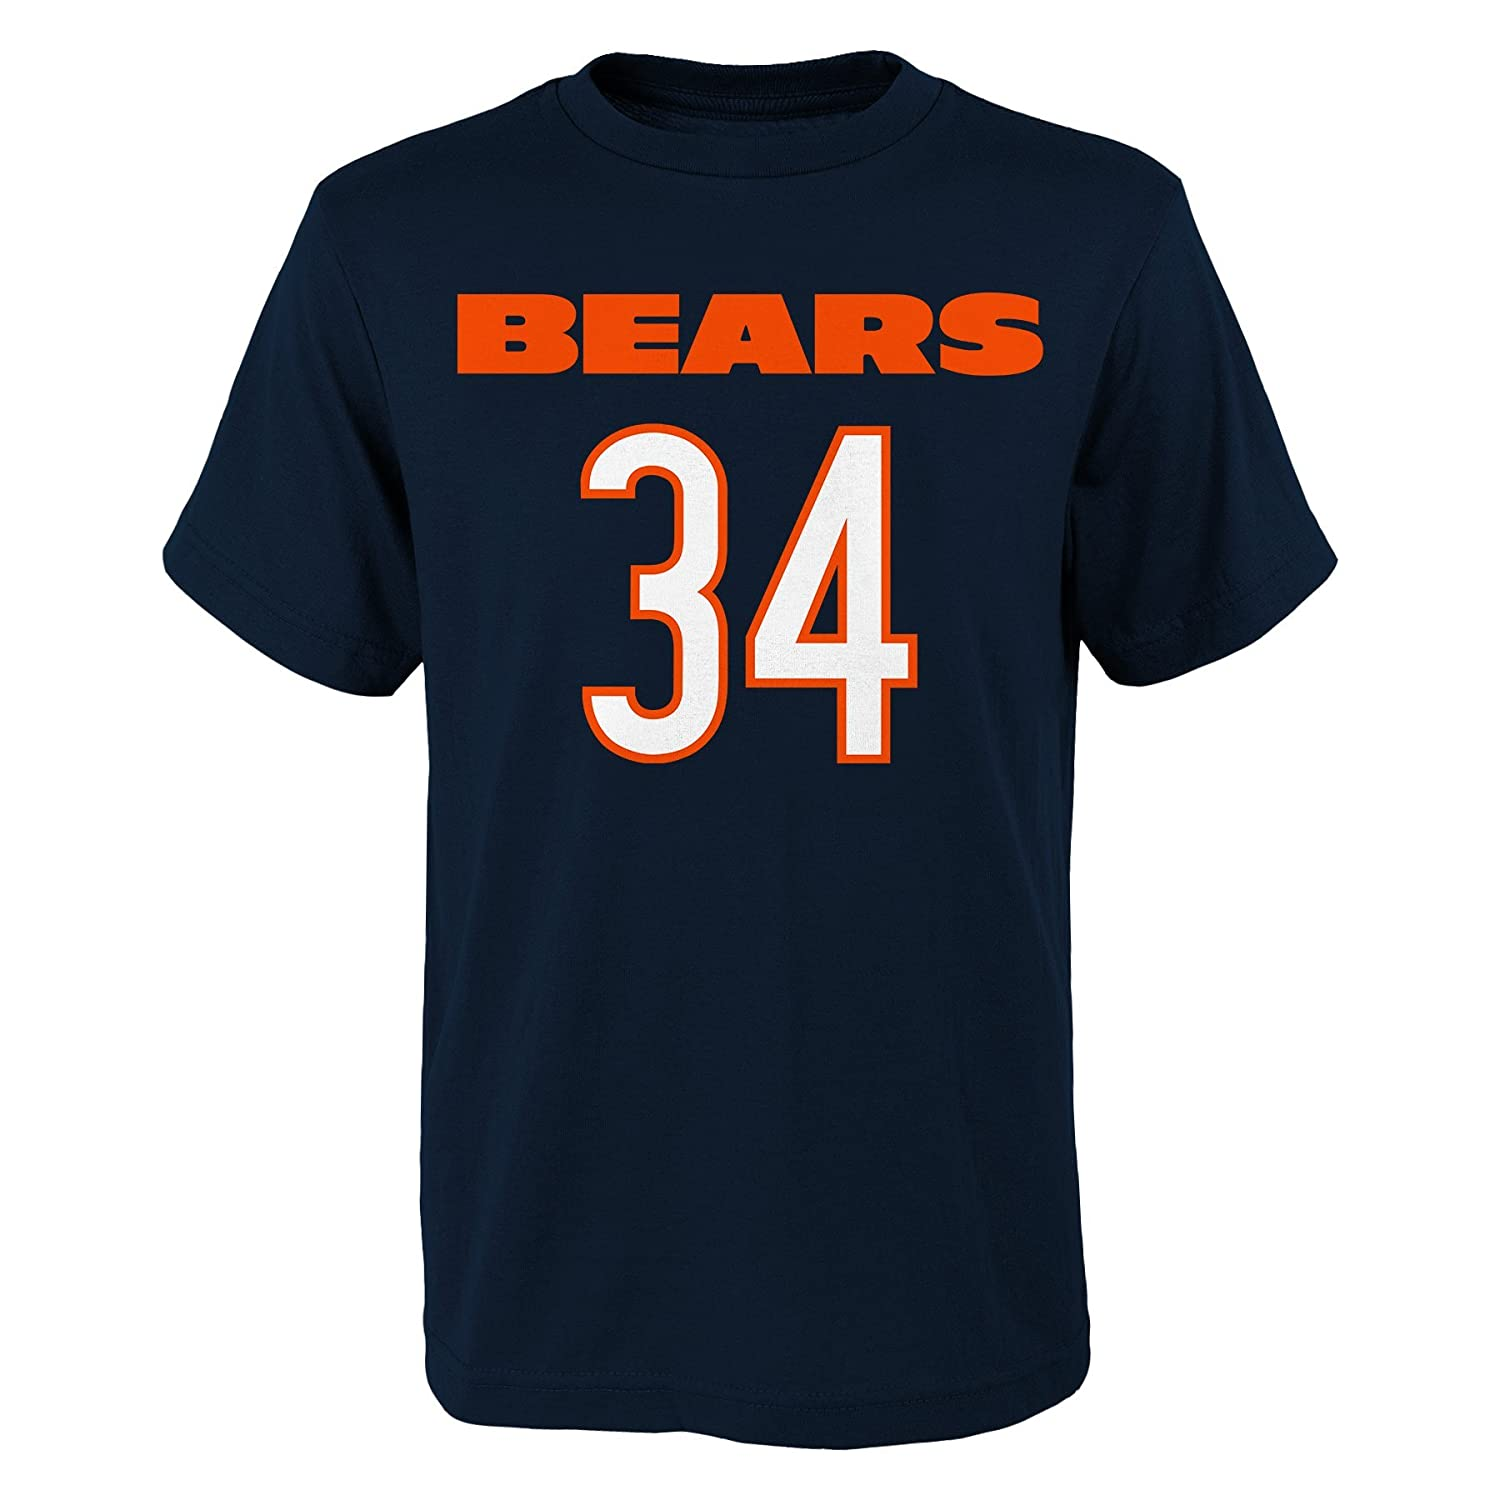 18 XL Navy Outerstuff NFL Chicago Bears Youth Boys Retired Player Mainliner Name Short Sleeve Tee